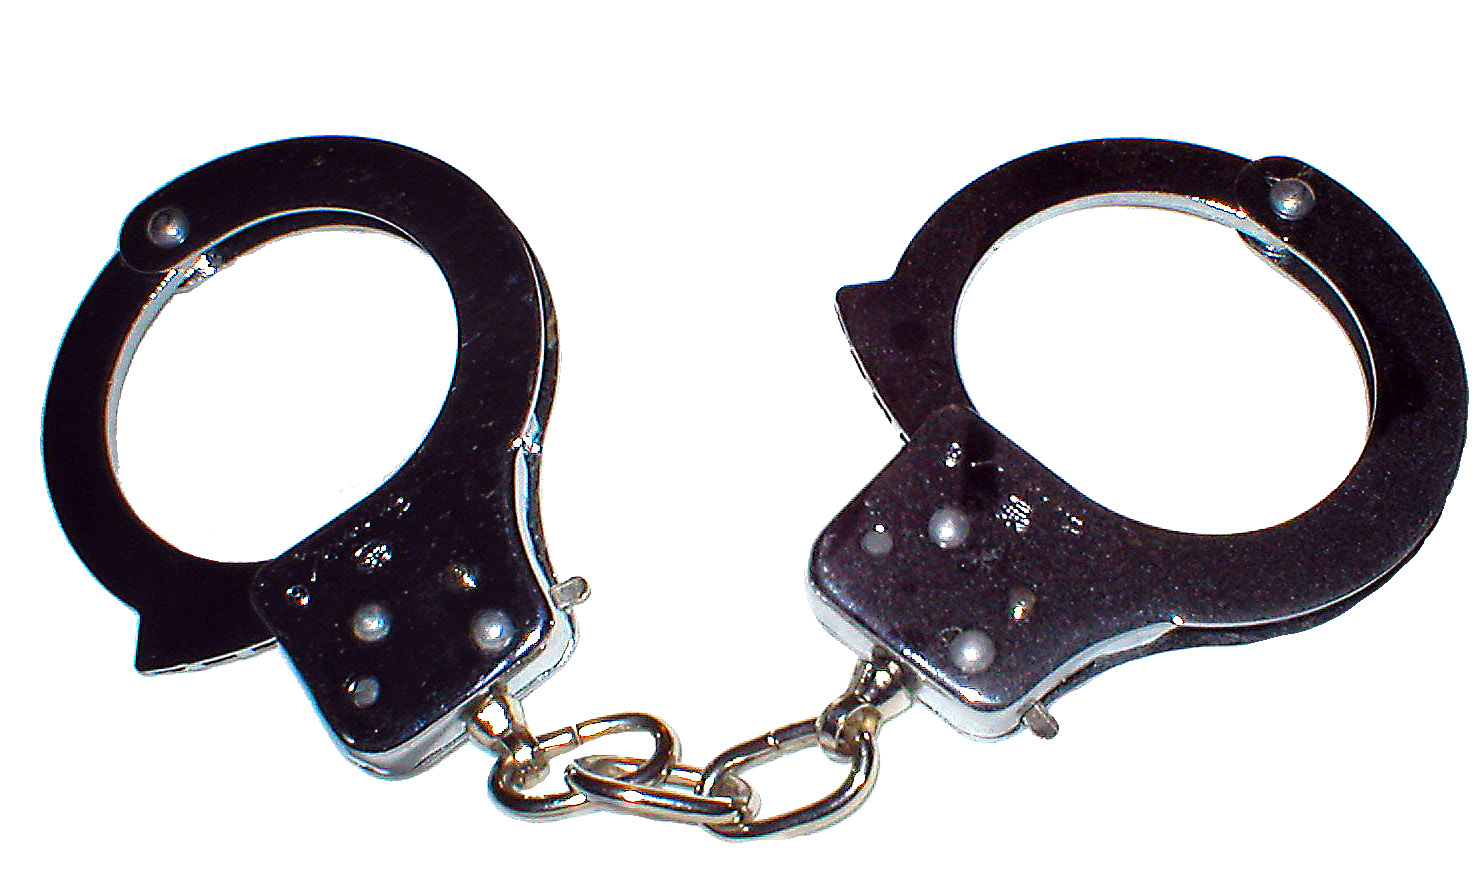 security handcuffs